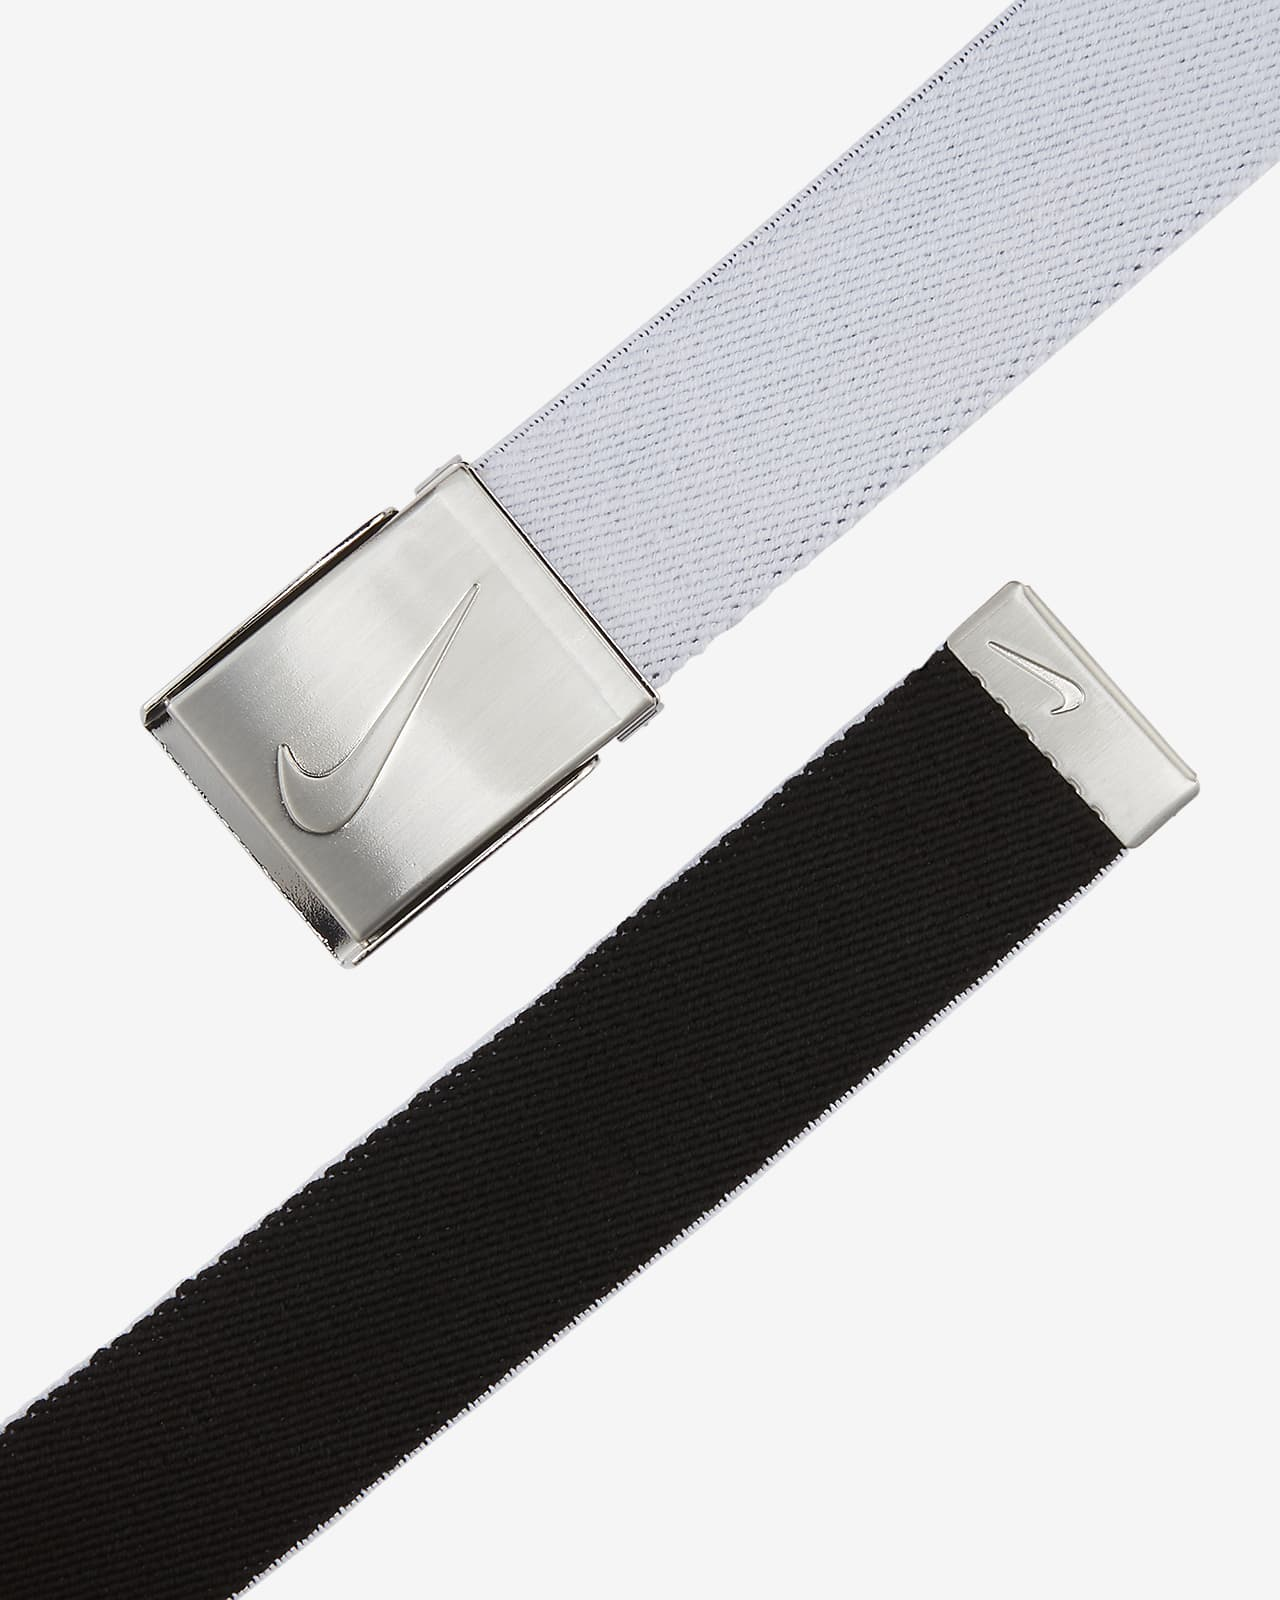 nudo Hassy Dónde  Nike Men's Reversible Stretch Web Golf Belt. Nike.com